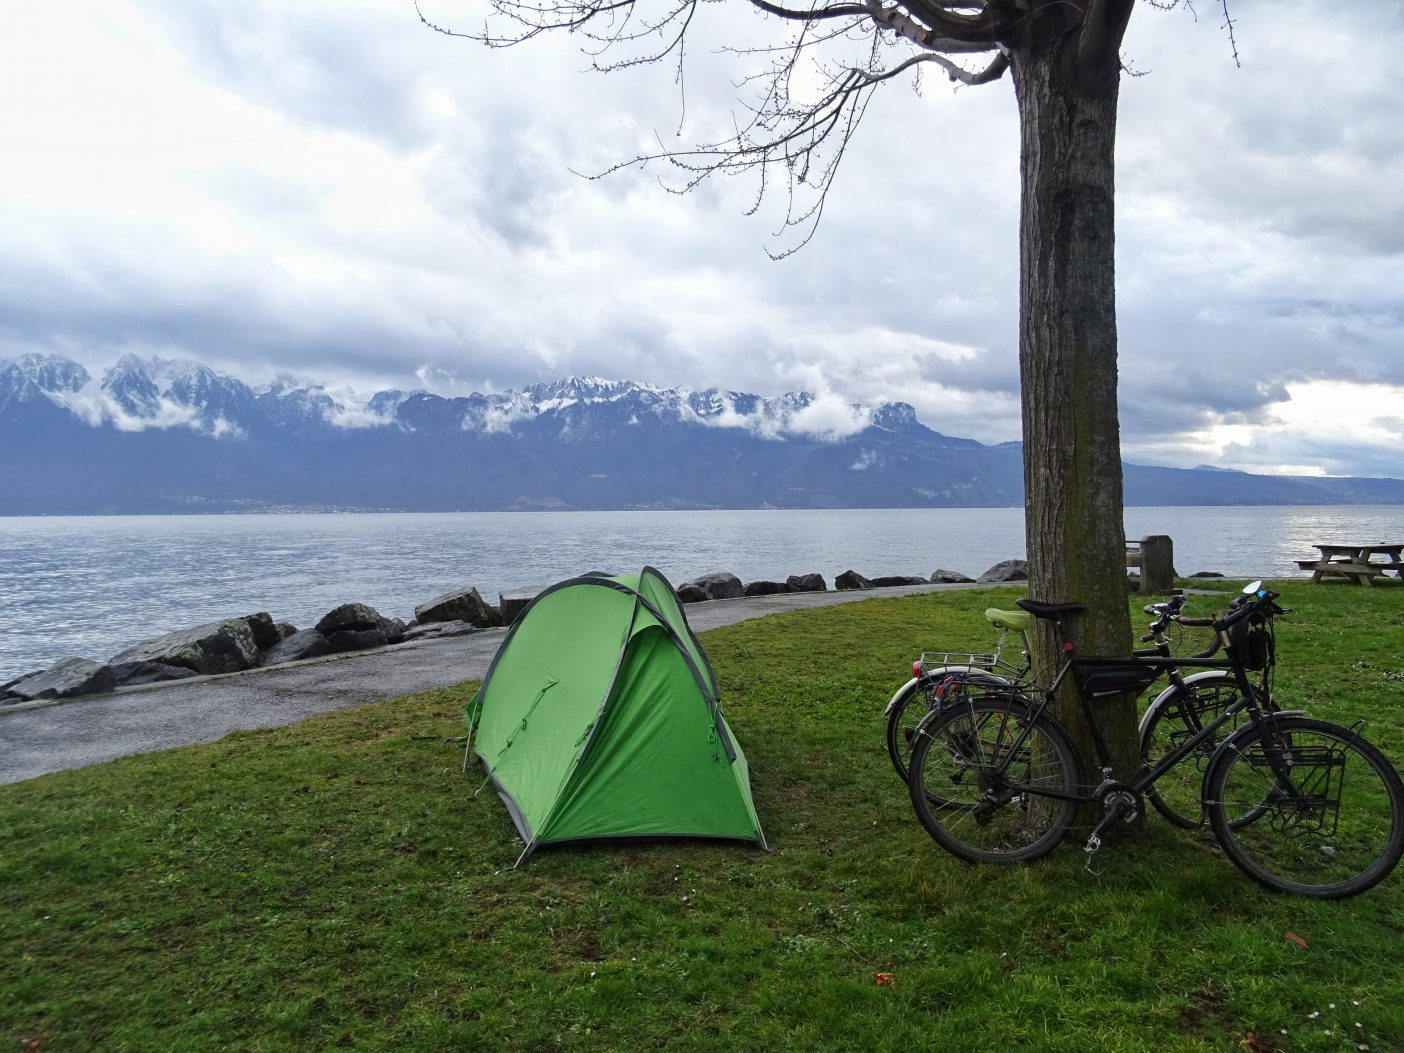 Tent camped on Lac Leman in the Swiss Alps